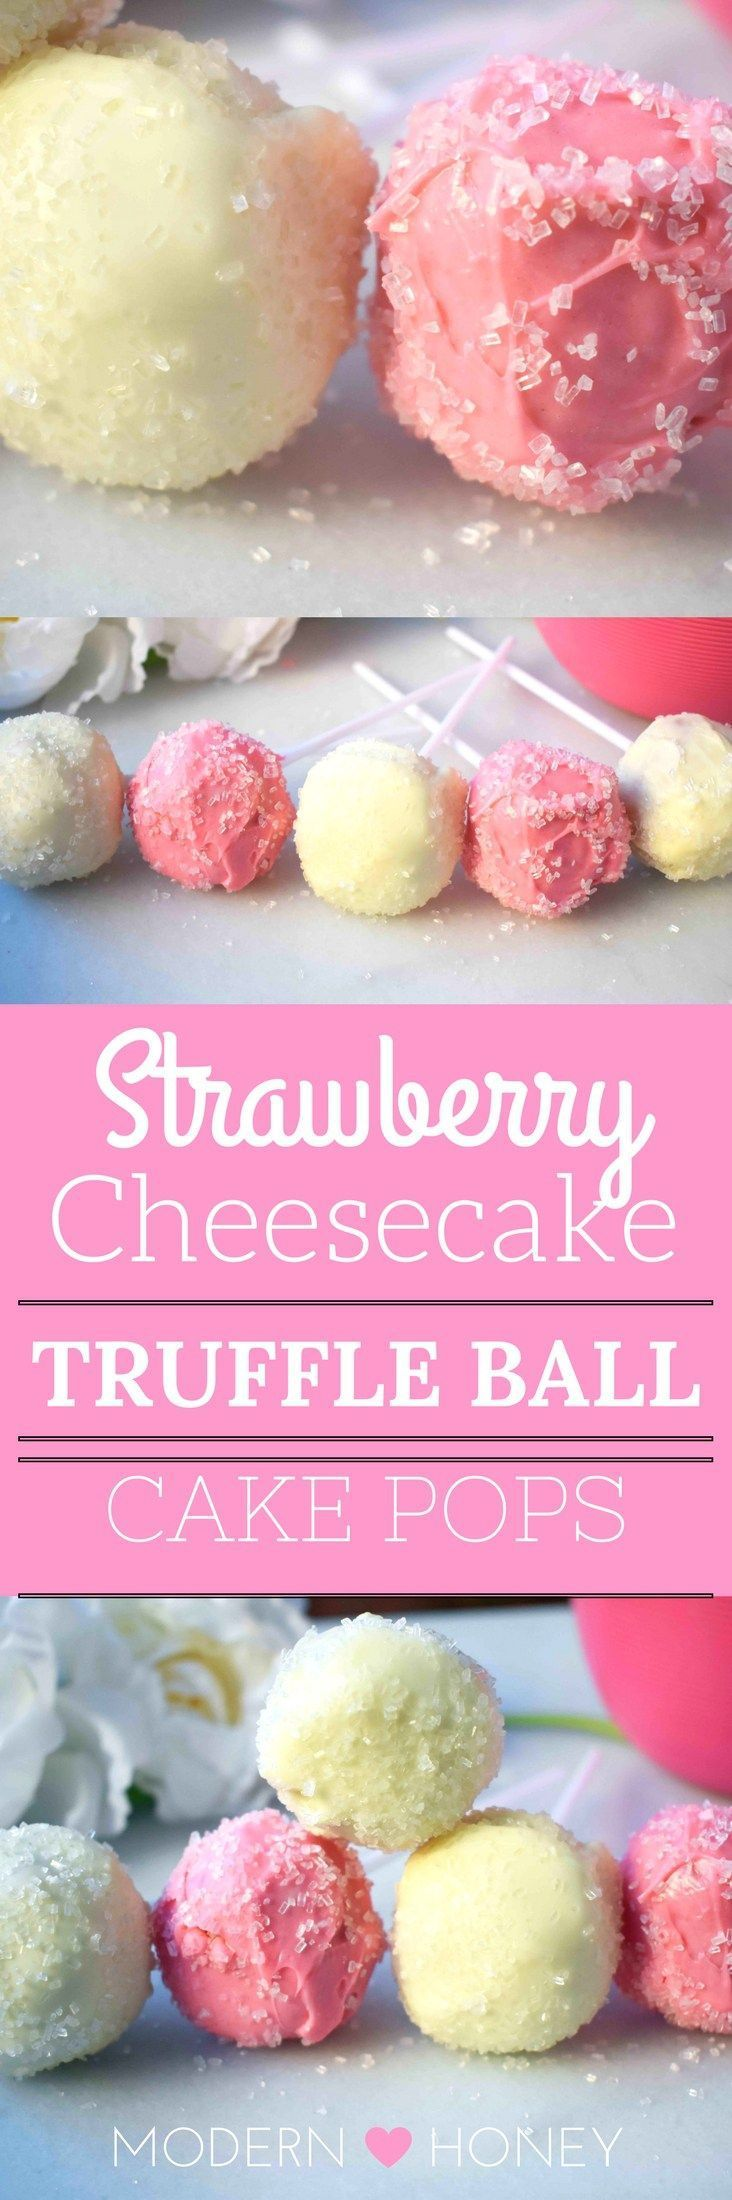 Strawberry Cheesecake Truffle Balls Cake Pops. Homemade yellow butter cake mixed with fresh strawberry cream cheese frosting. Then rolled in melted white melting wafers and sprinkled with sparkling sugar. http://www.modernhoney.com